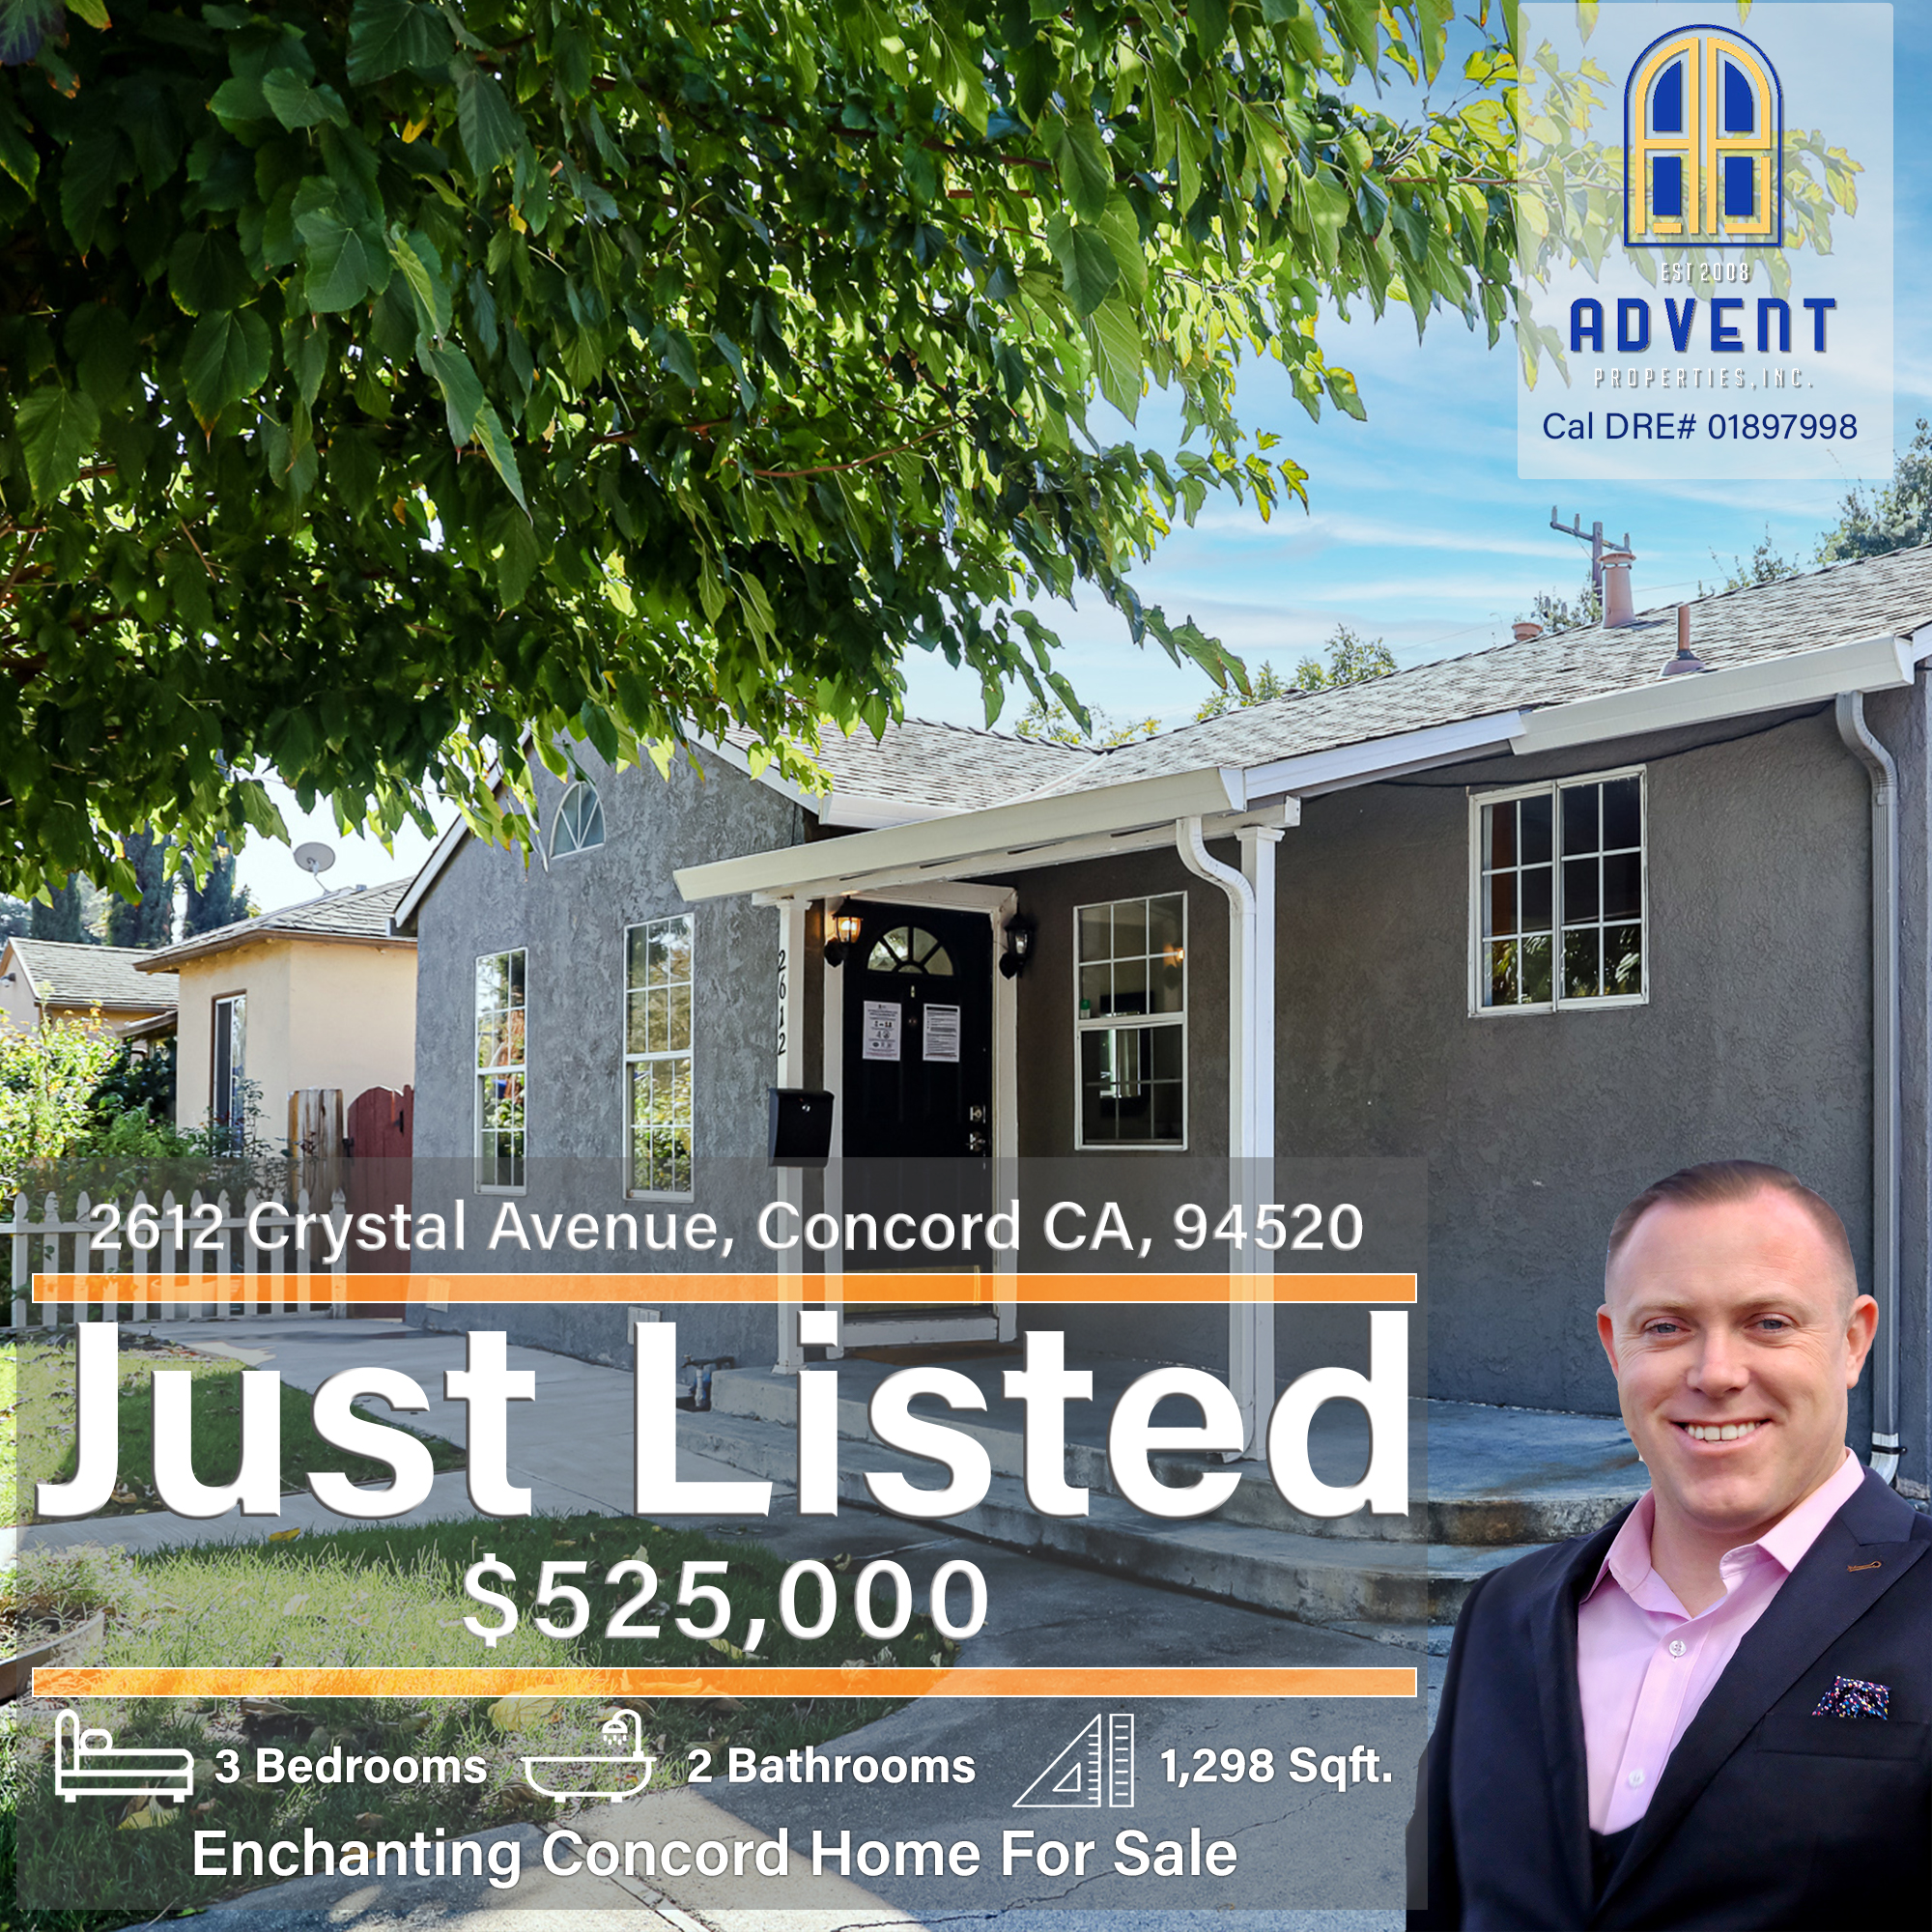 Just Listed by Darryl Glass: 2612 Crystal Avenue, Concord, CA 94520